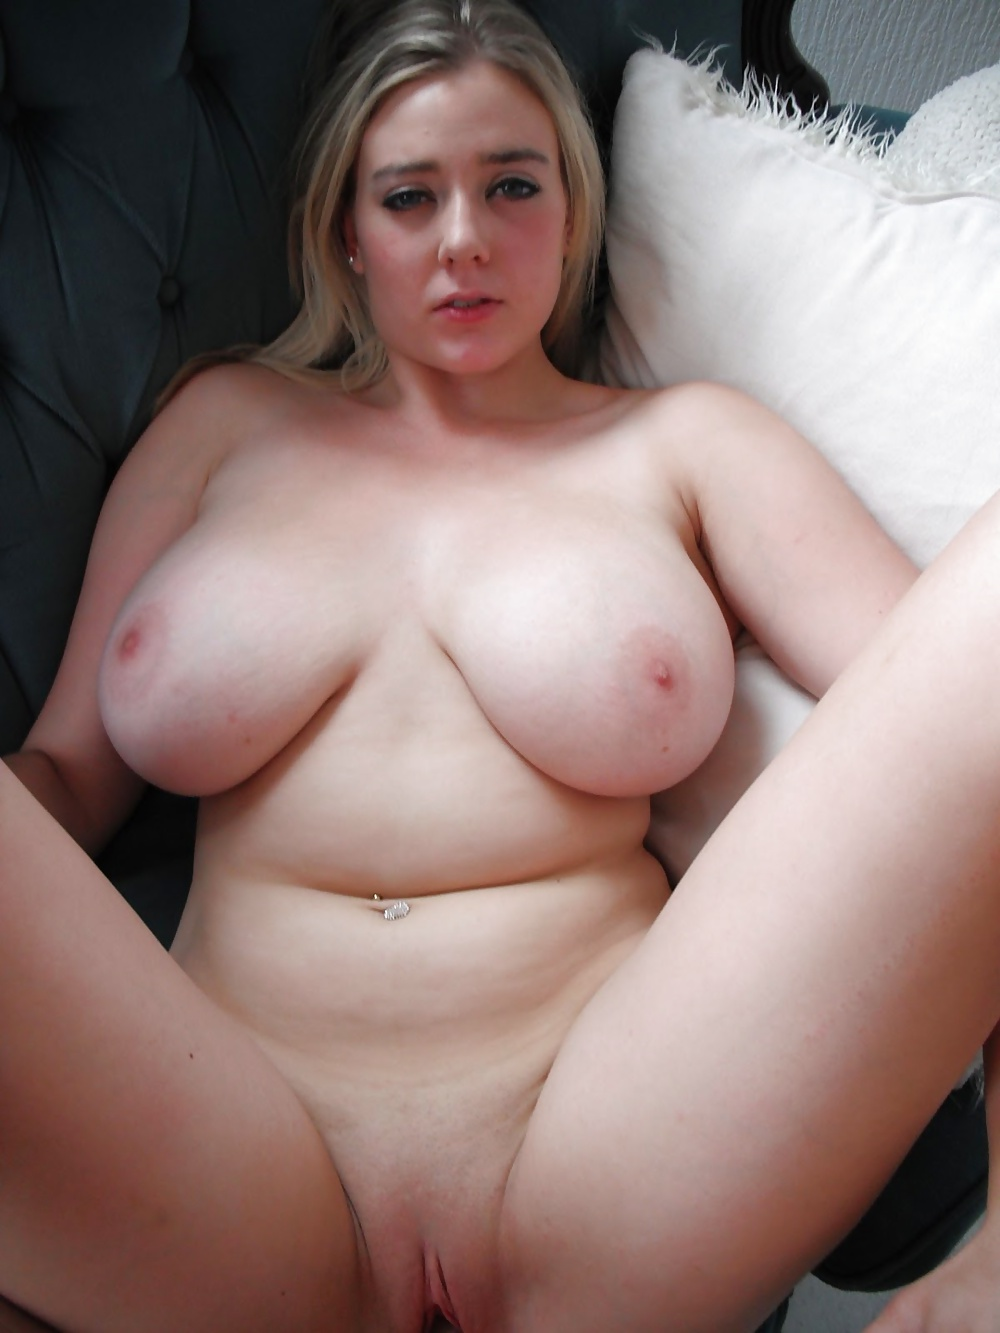 Thick bitches naked tumblr — pic 14